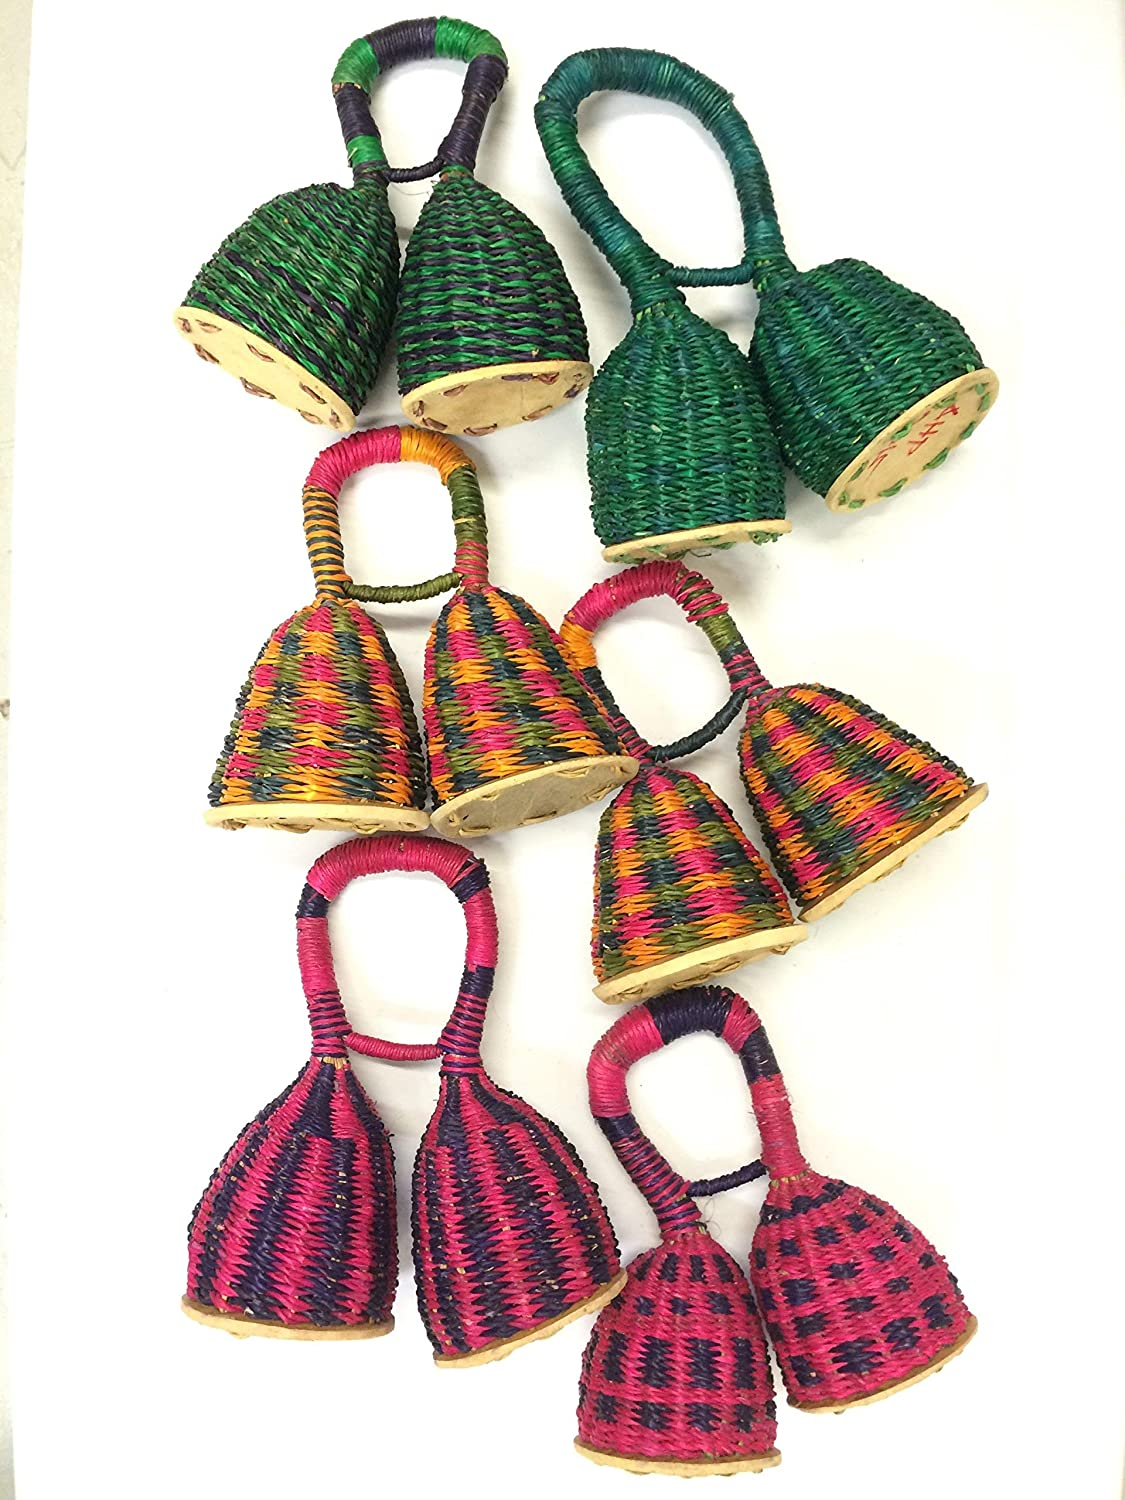 of African Double Woven Seed Caxixi Basket Shakers from Ghana Africa Heartwood Project Pair 2